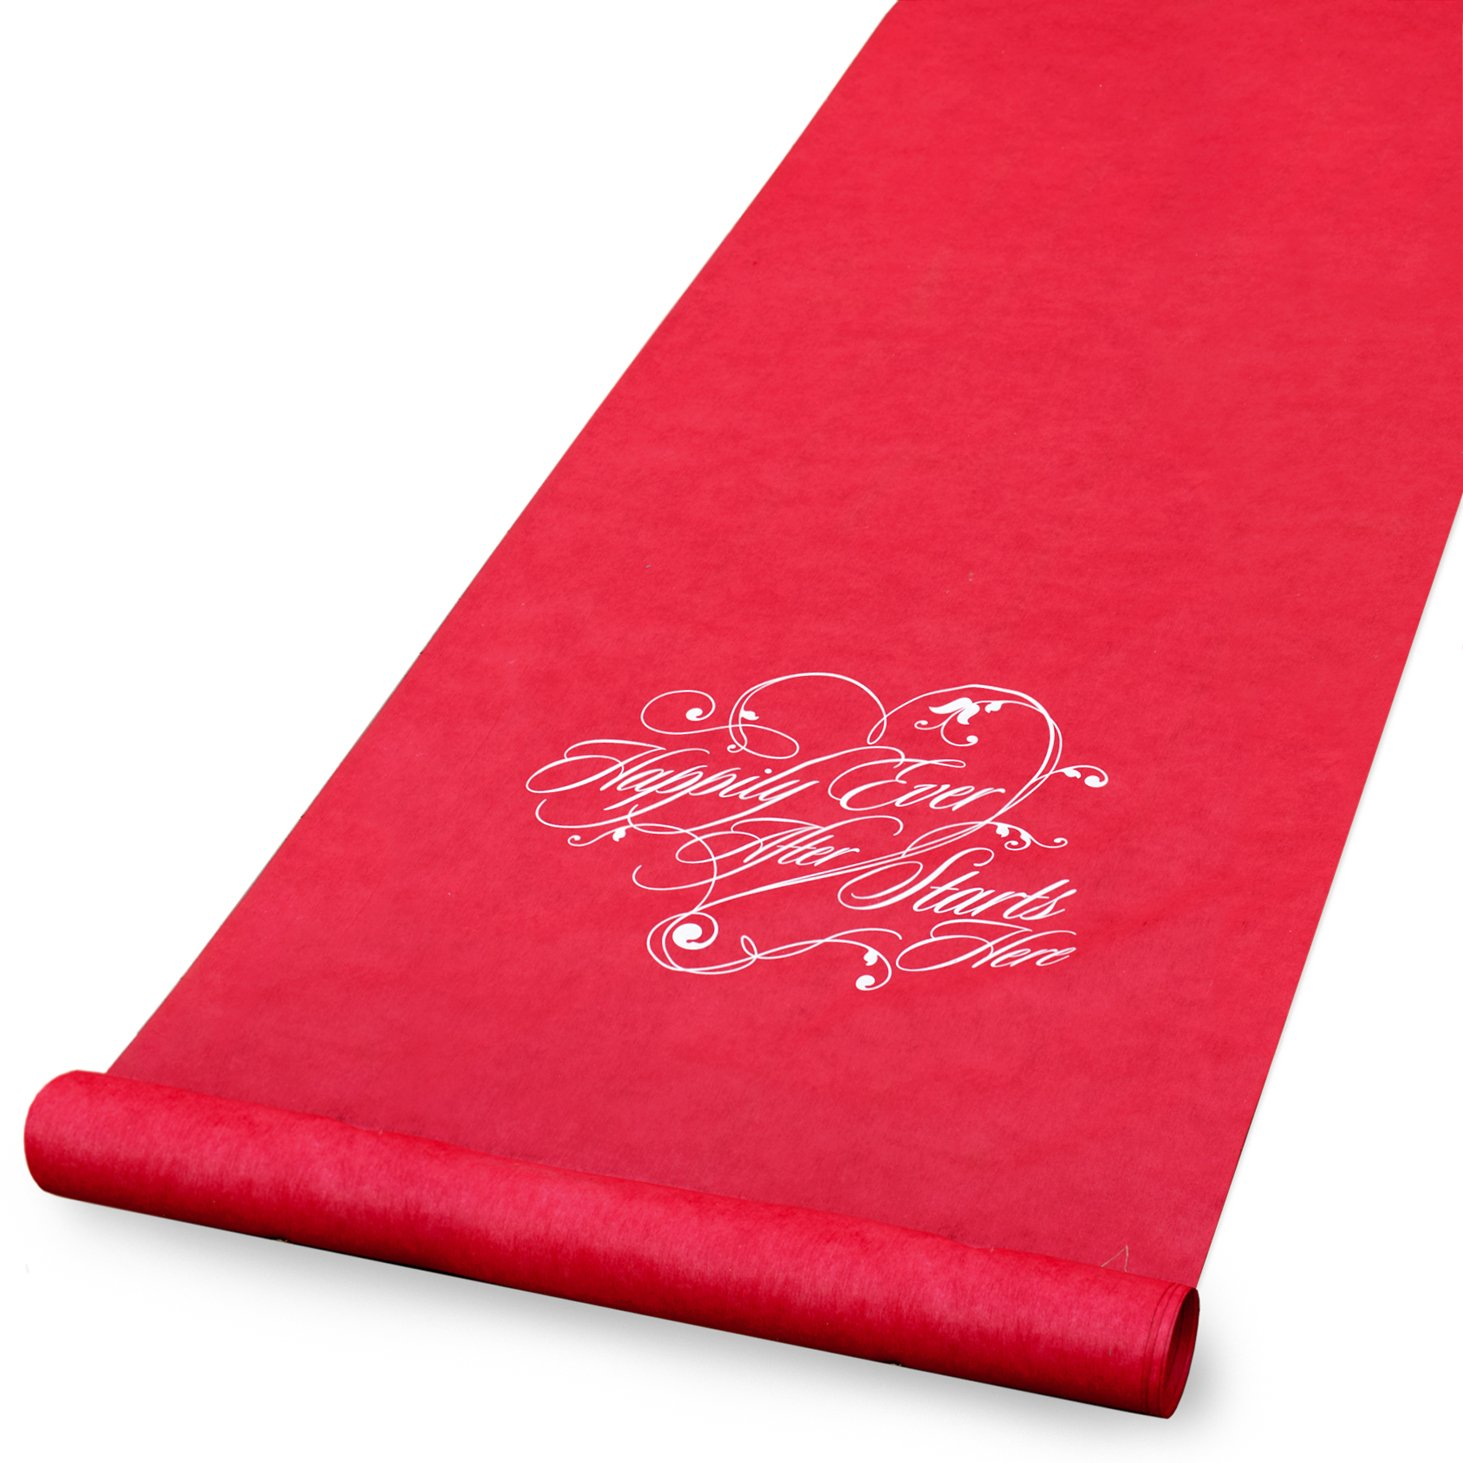 Hortense B. Hewitt Aisle Runner Wedding Accessories, Red Happily Ever After 30051